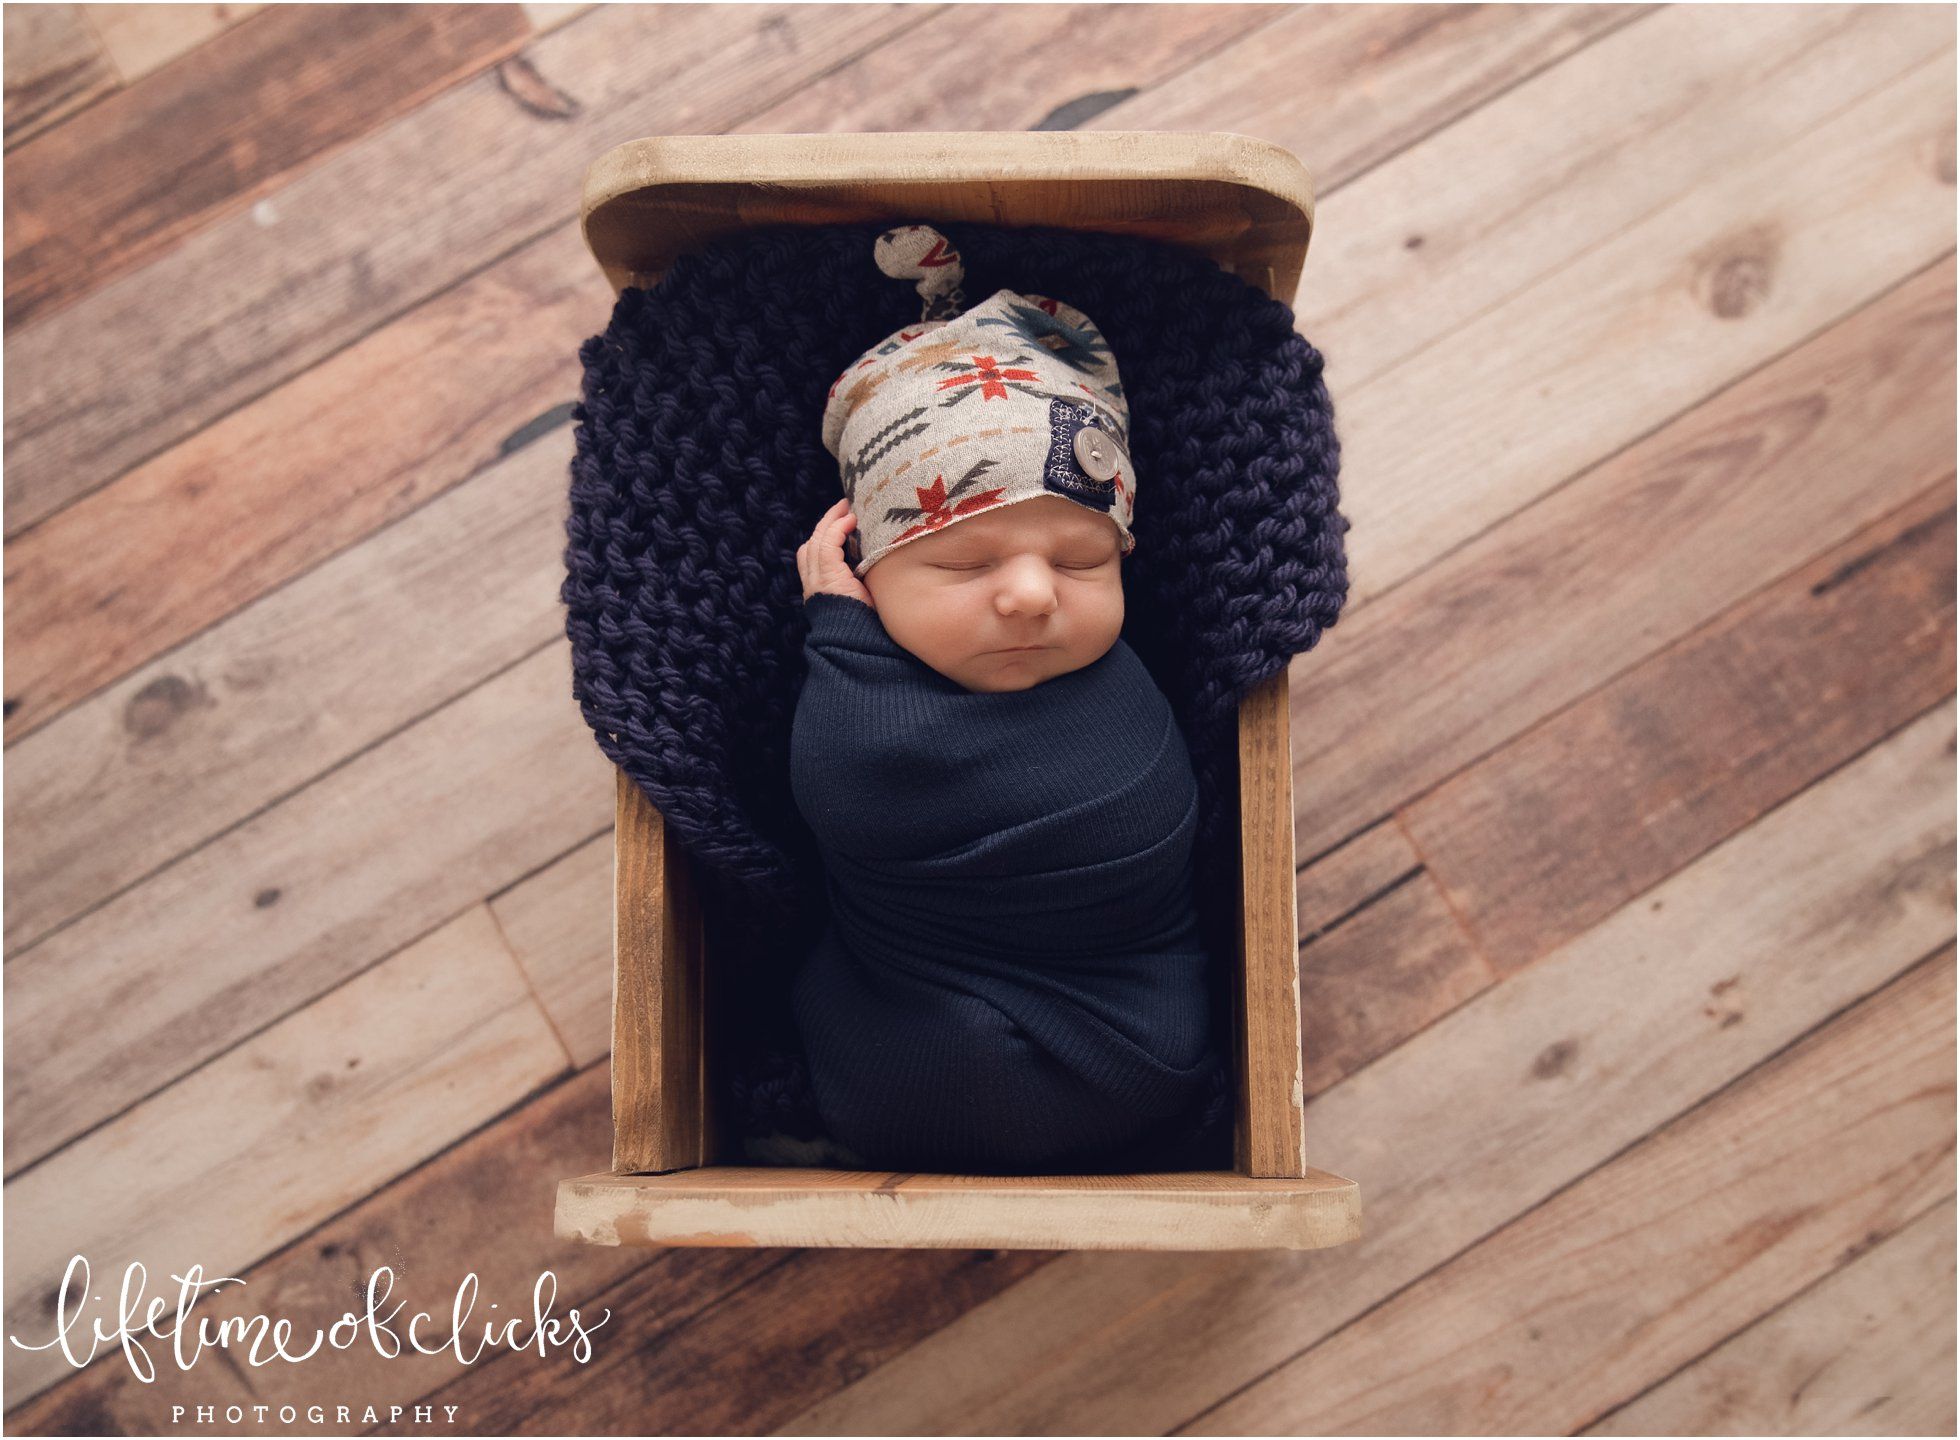 Newborn in crate | Photo by Lifetime of Clicks Photography